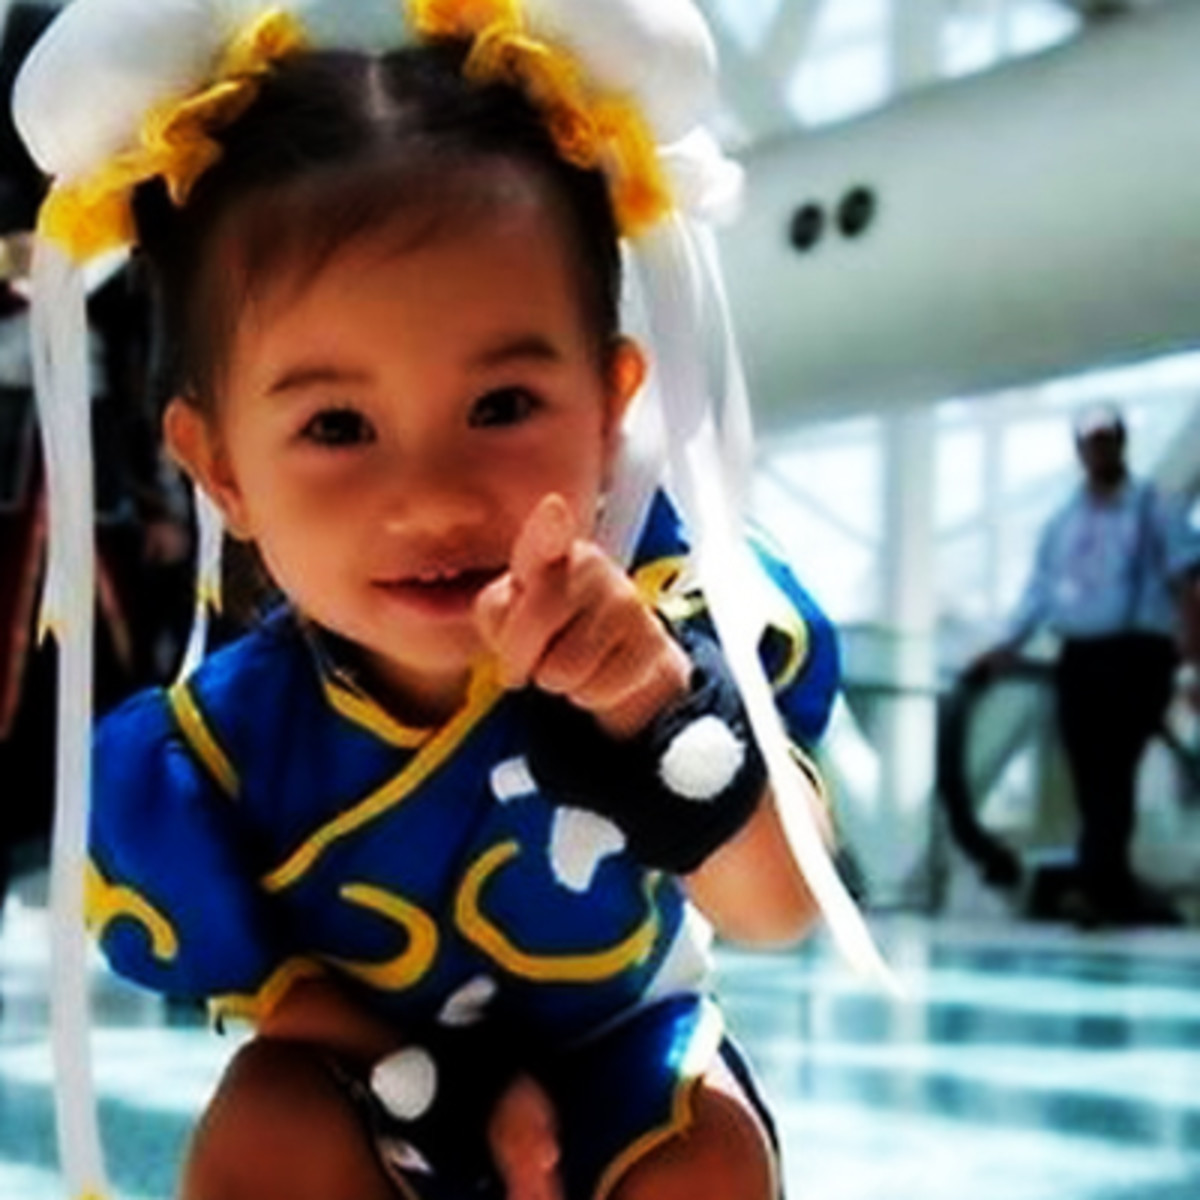 A homemade Chun Li costume is a little tricky, but store-bought costumes are also available. The hairstyle is a key feature of this costume.